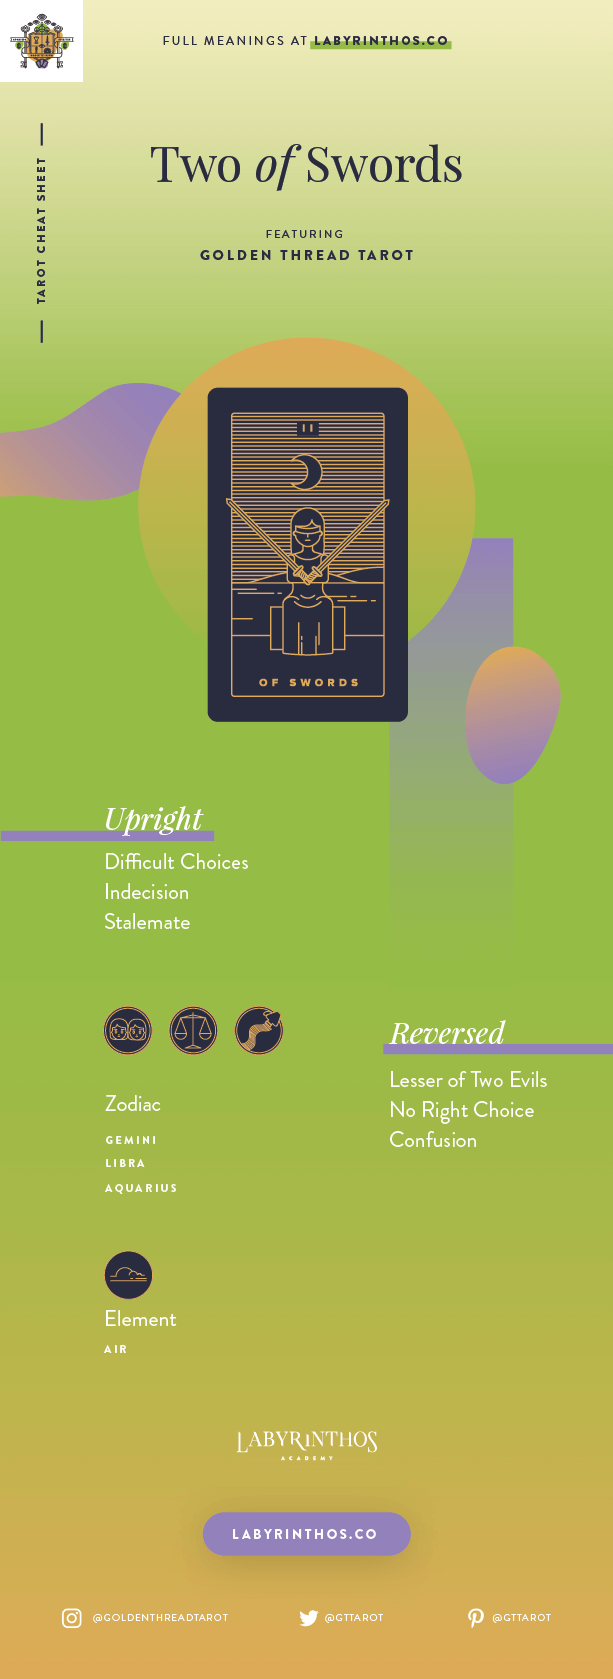 Two of Swords Meaning - Tarot Card Meanings Cheat Sheet. Art from Golden Thread Tarot.